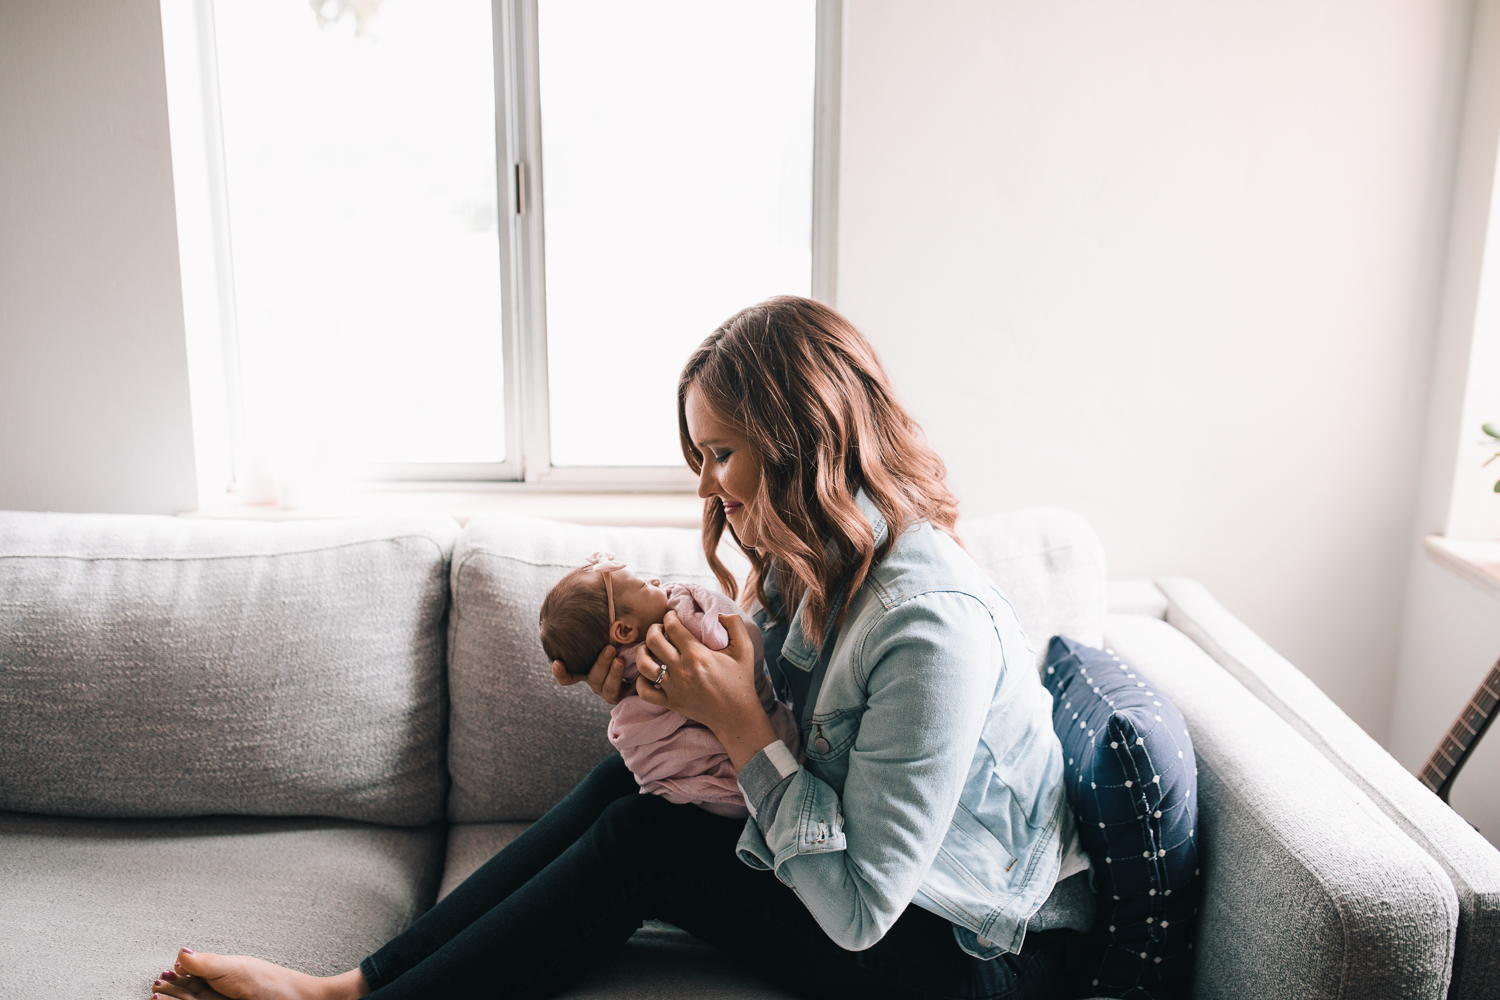 2019_05_ 262019.05.26 Isla Garrison Newborn Session Blog Photos Edited For Web 0022.jpg